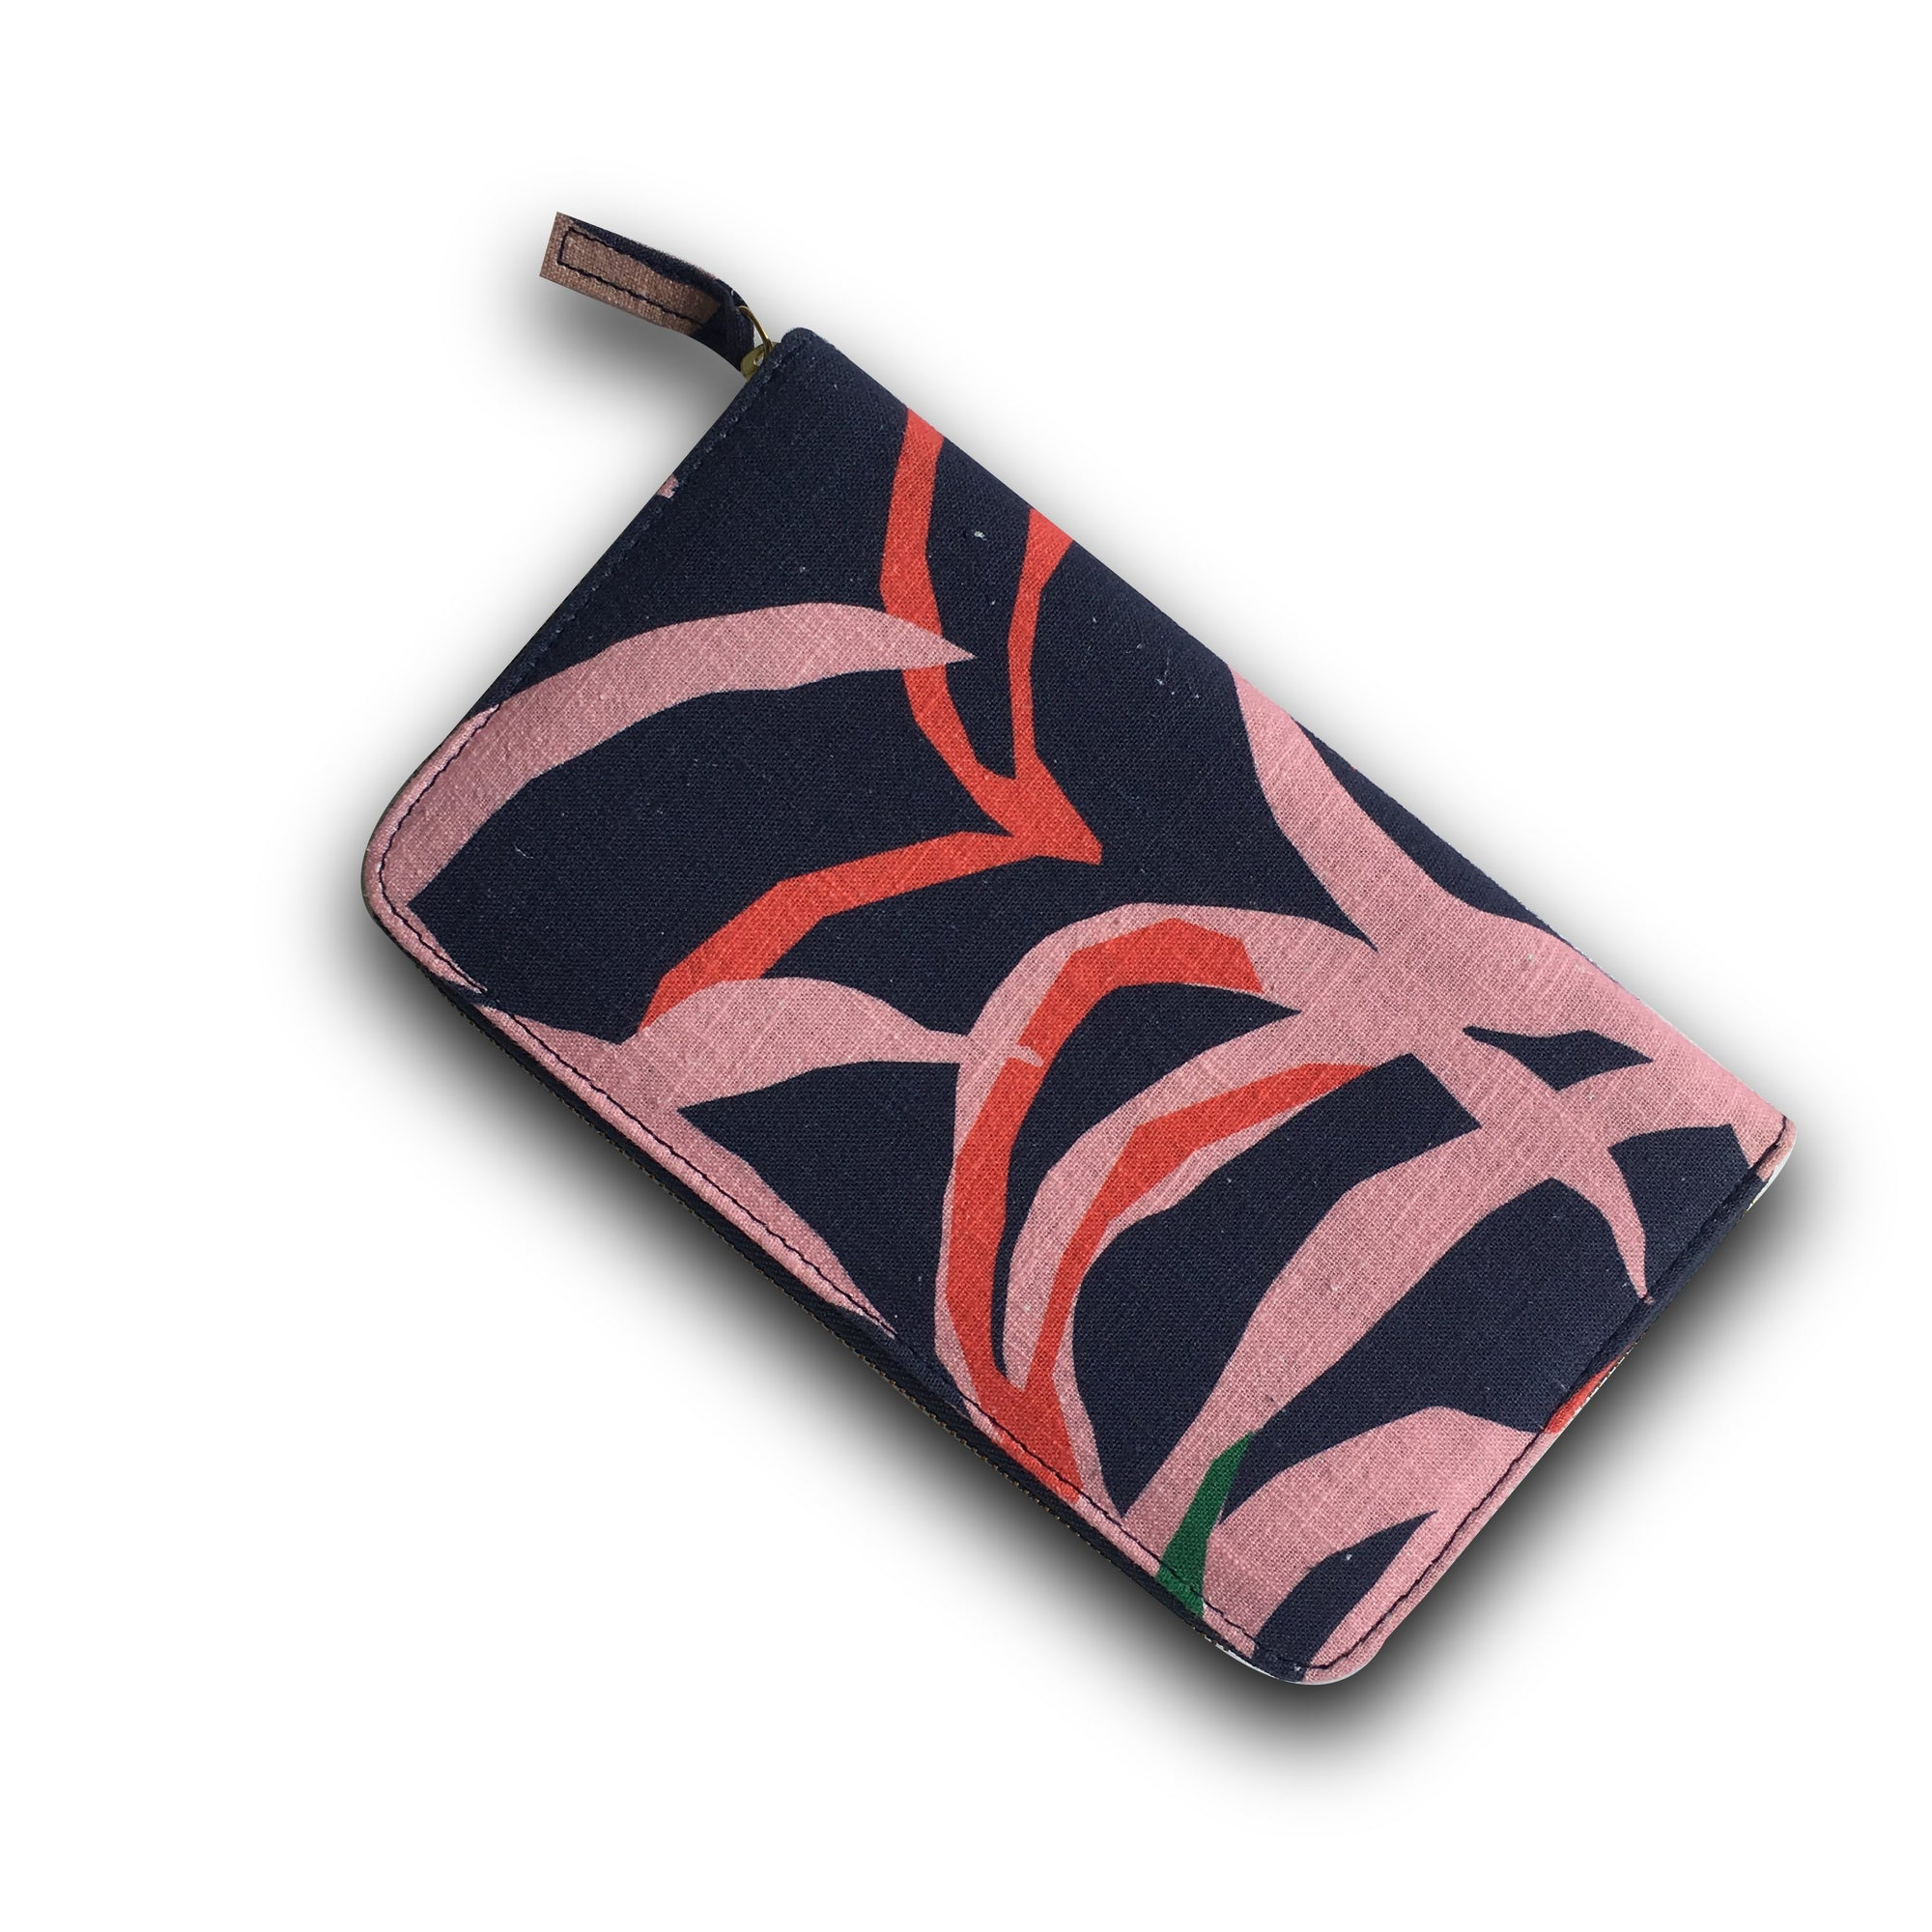 TRAVELLING TREV CLUTCH - PENIDA PALM PRINT (BLUE)